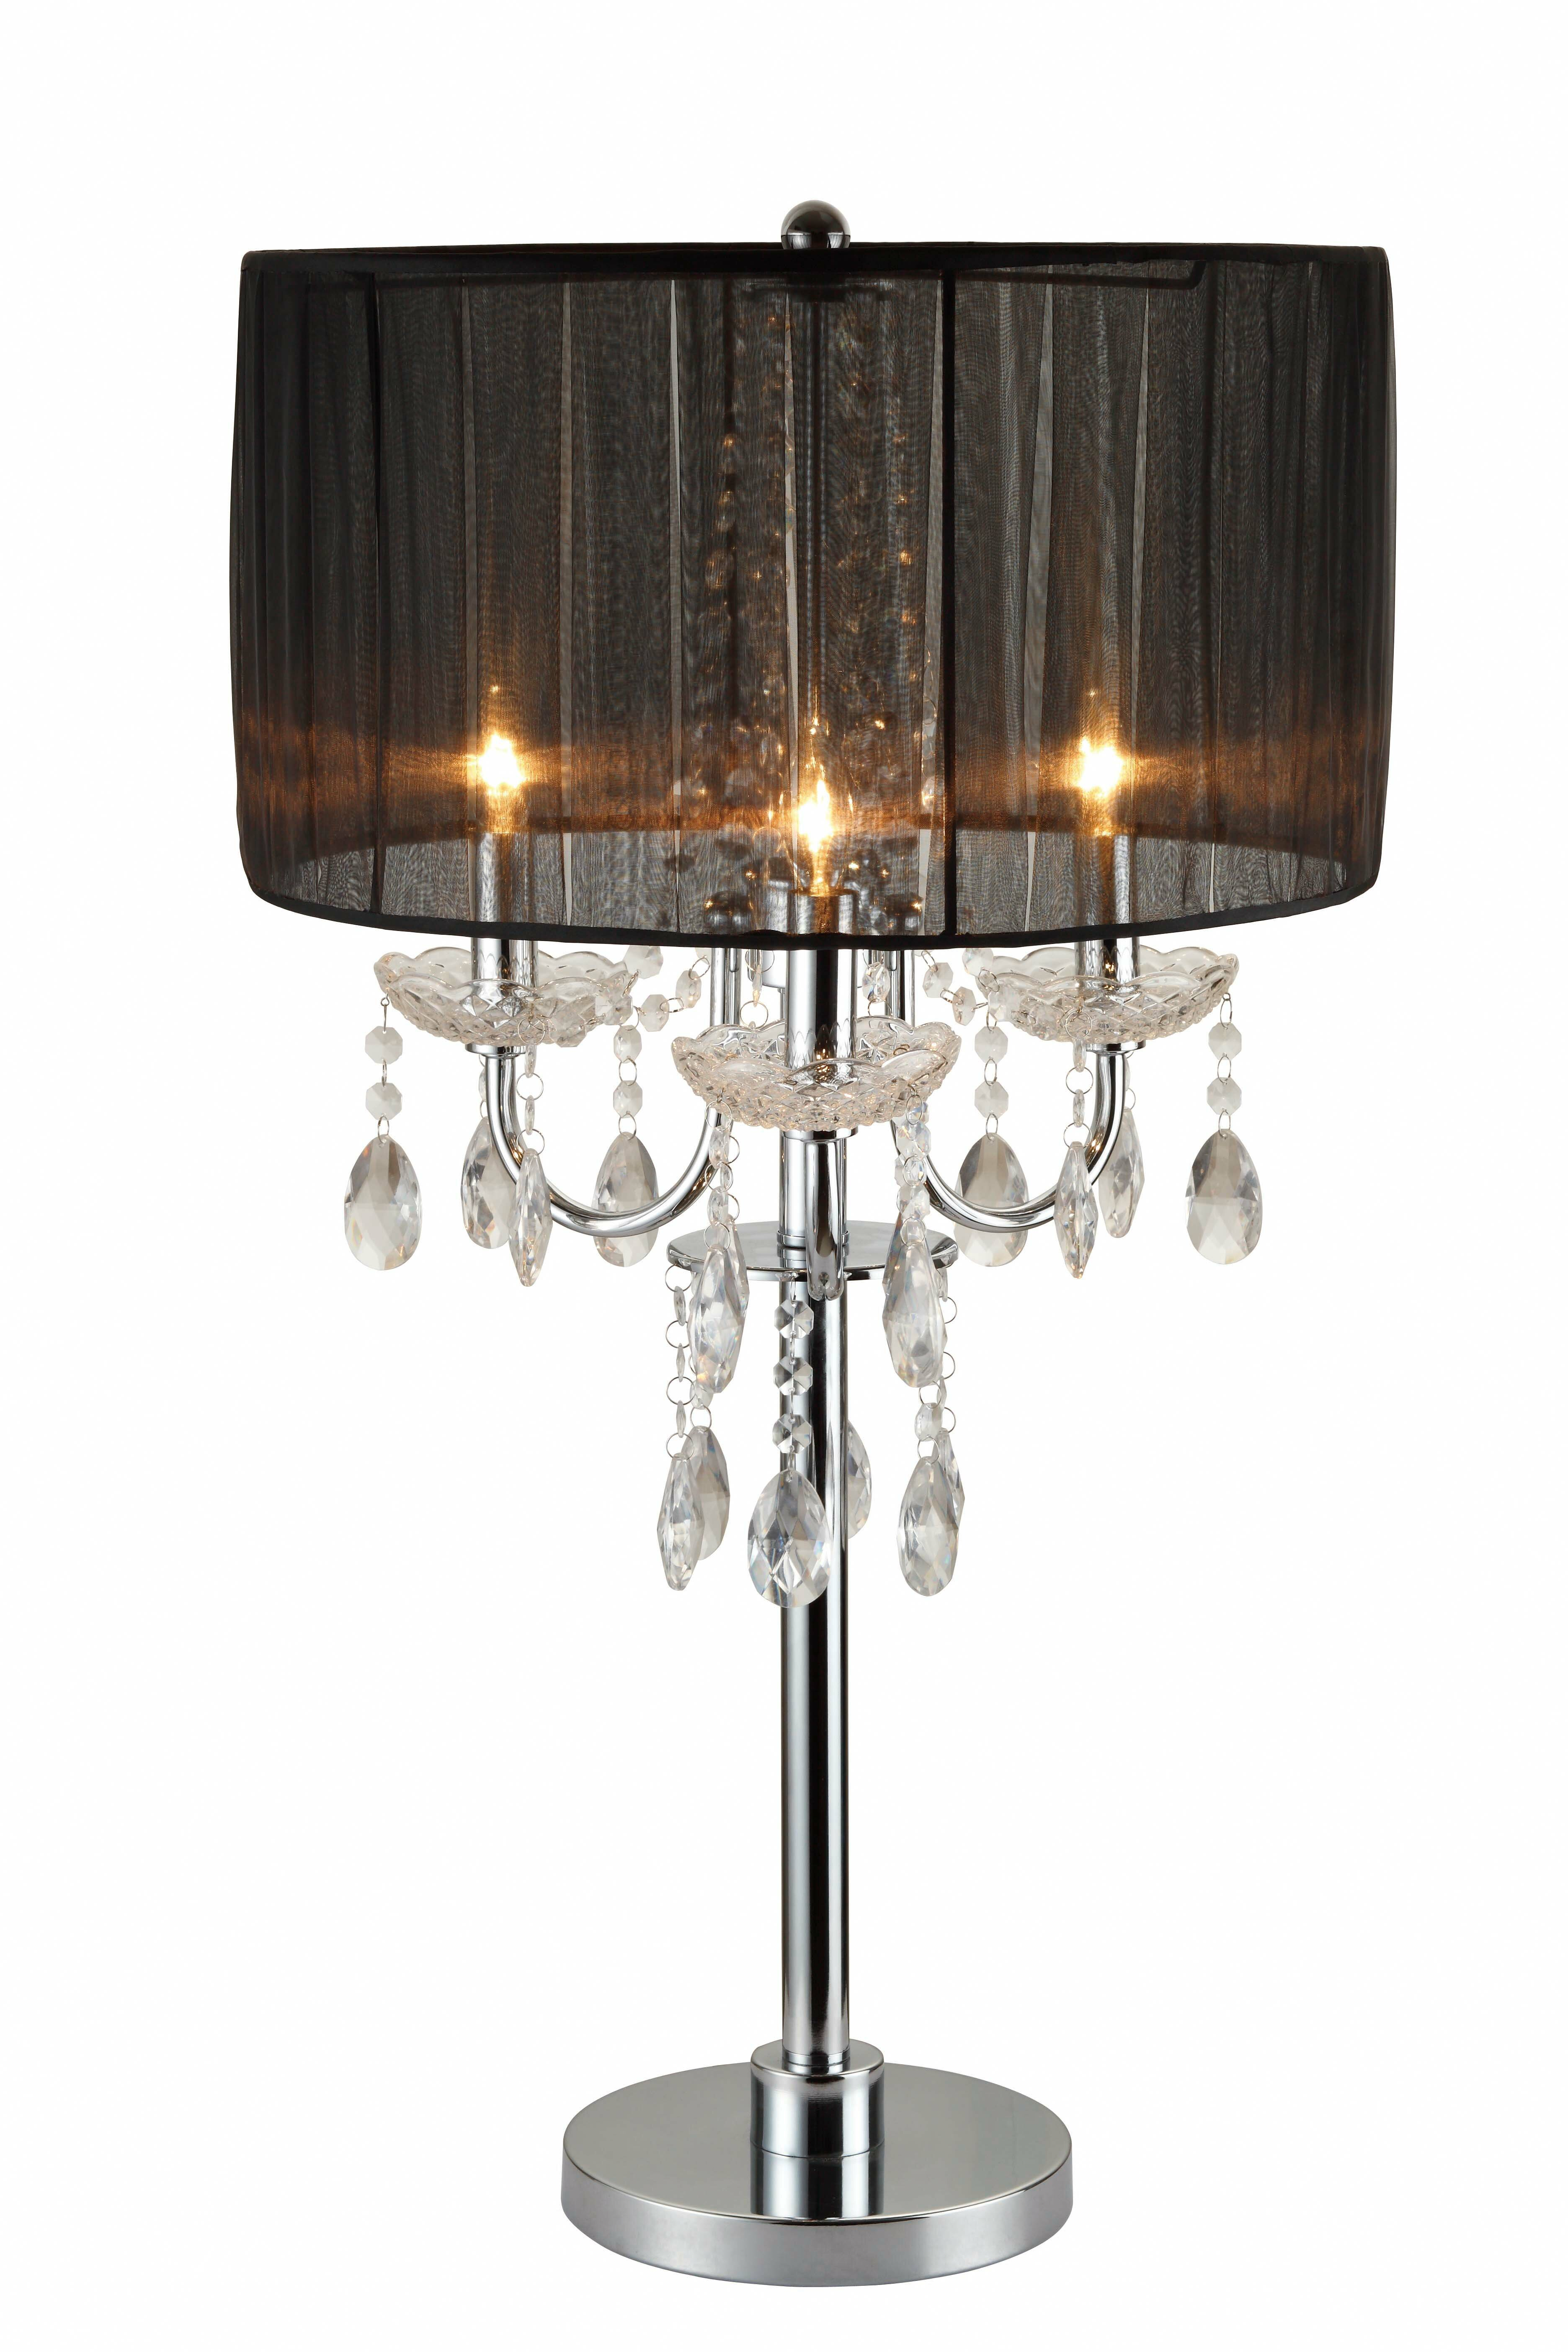 House Of Hampton Viers Chandelier Touch 29 Table Lamp Reviews